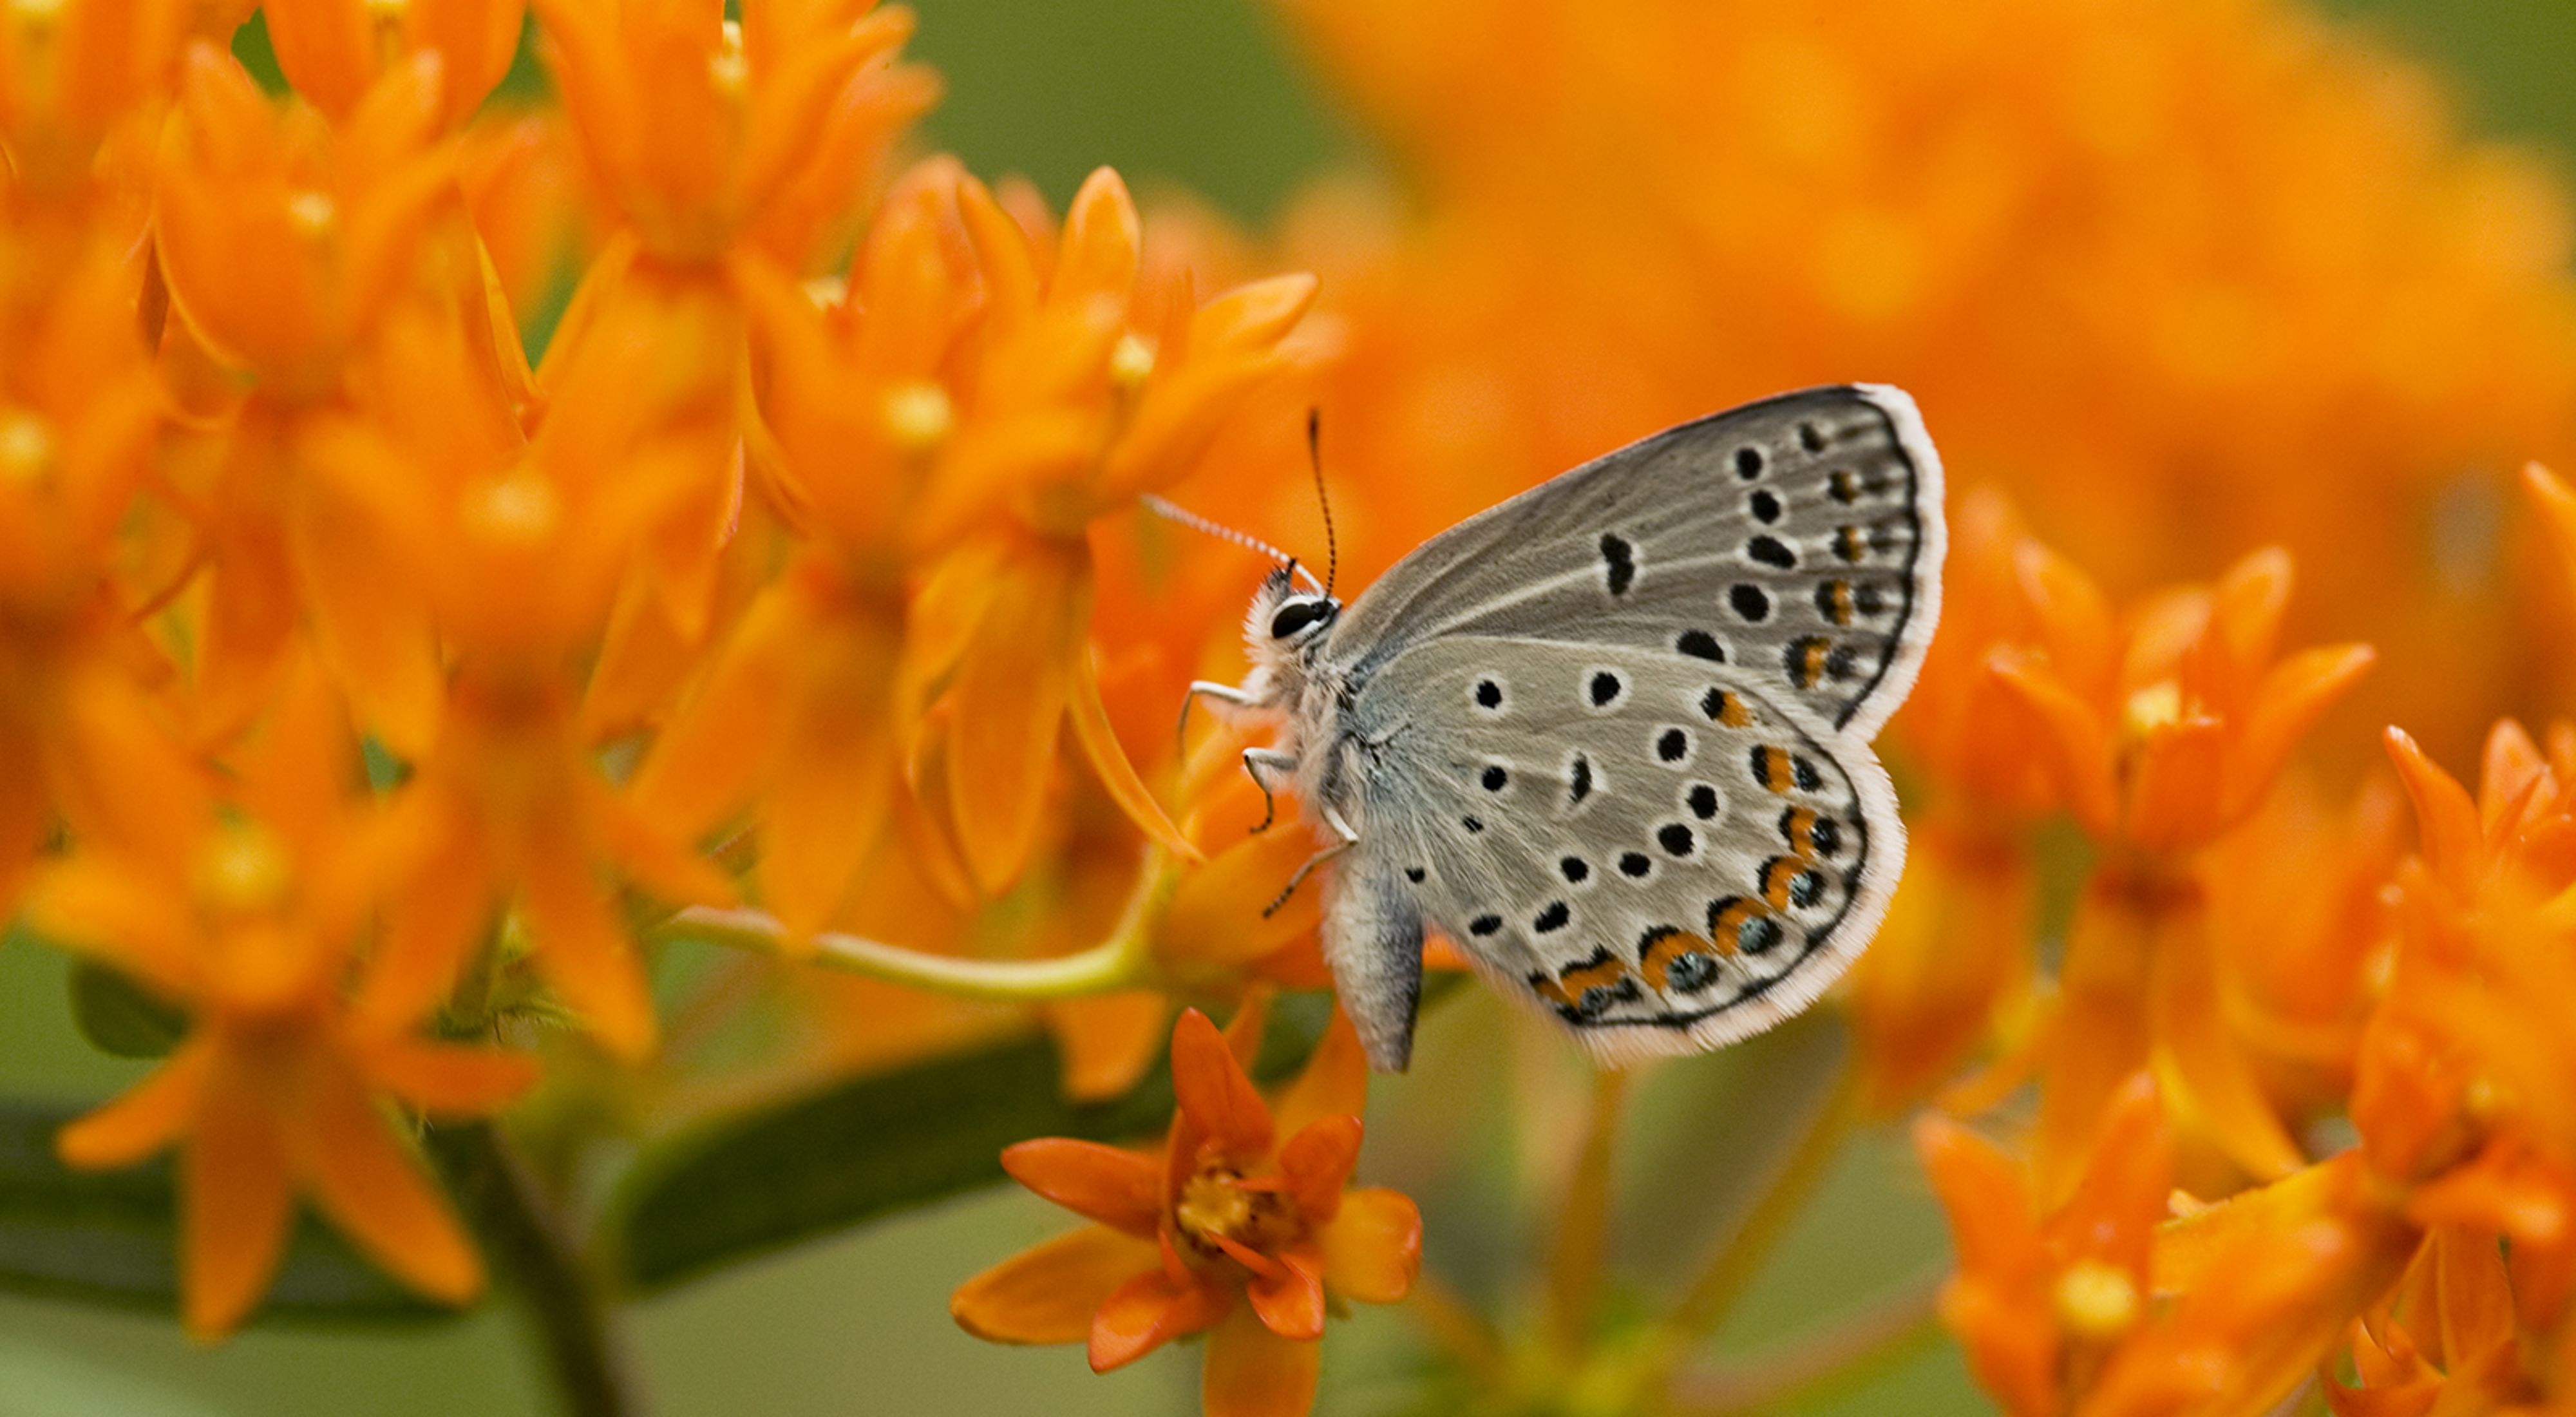 A small blue-gray butterfly with dark spots sits on a cluster of small, bright orange flowers.